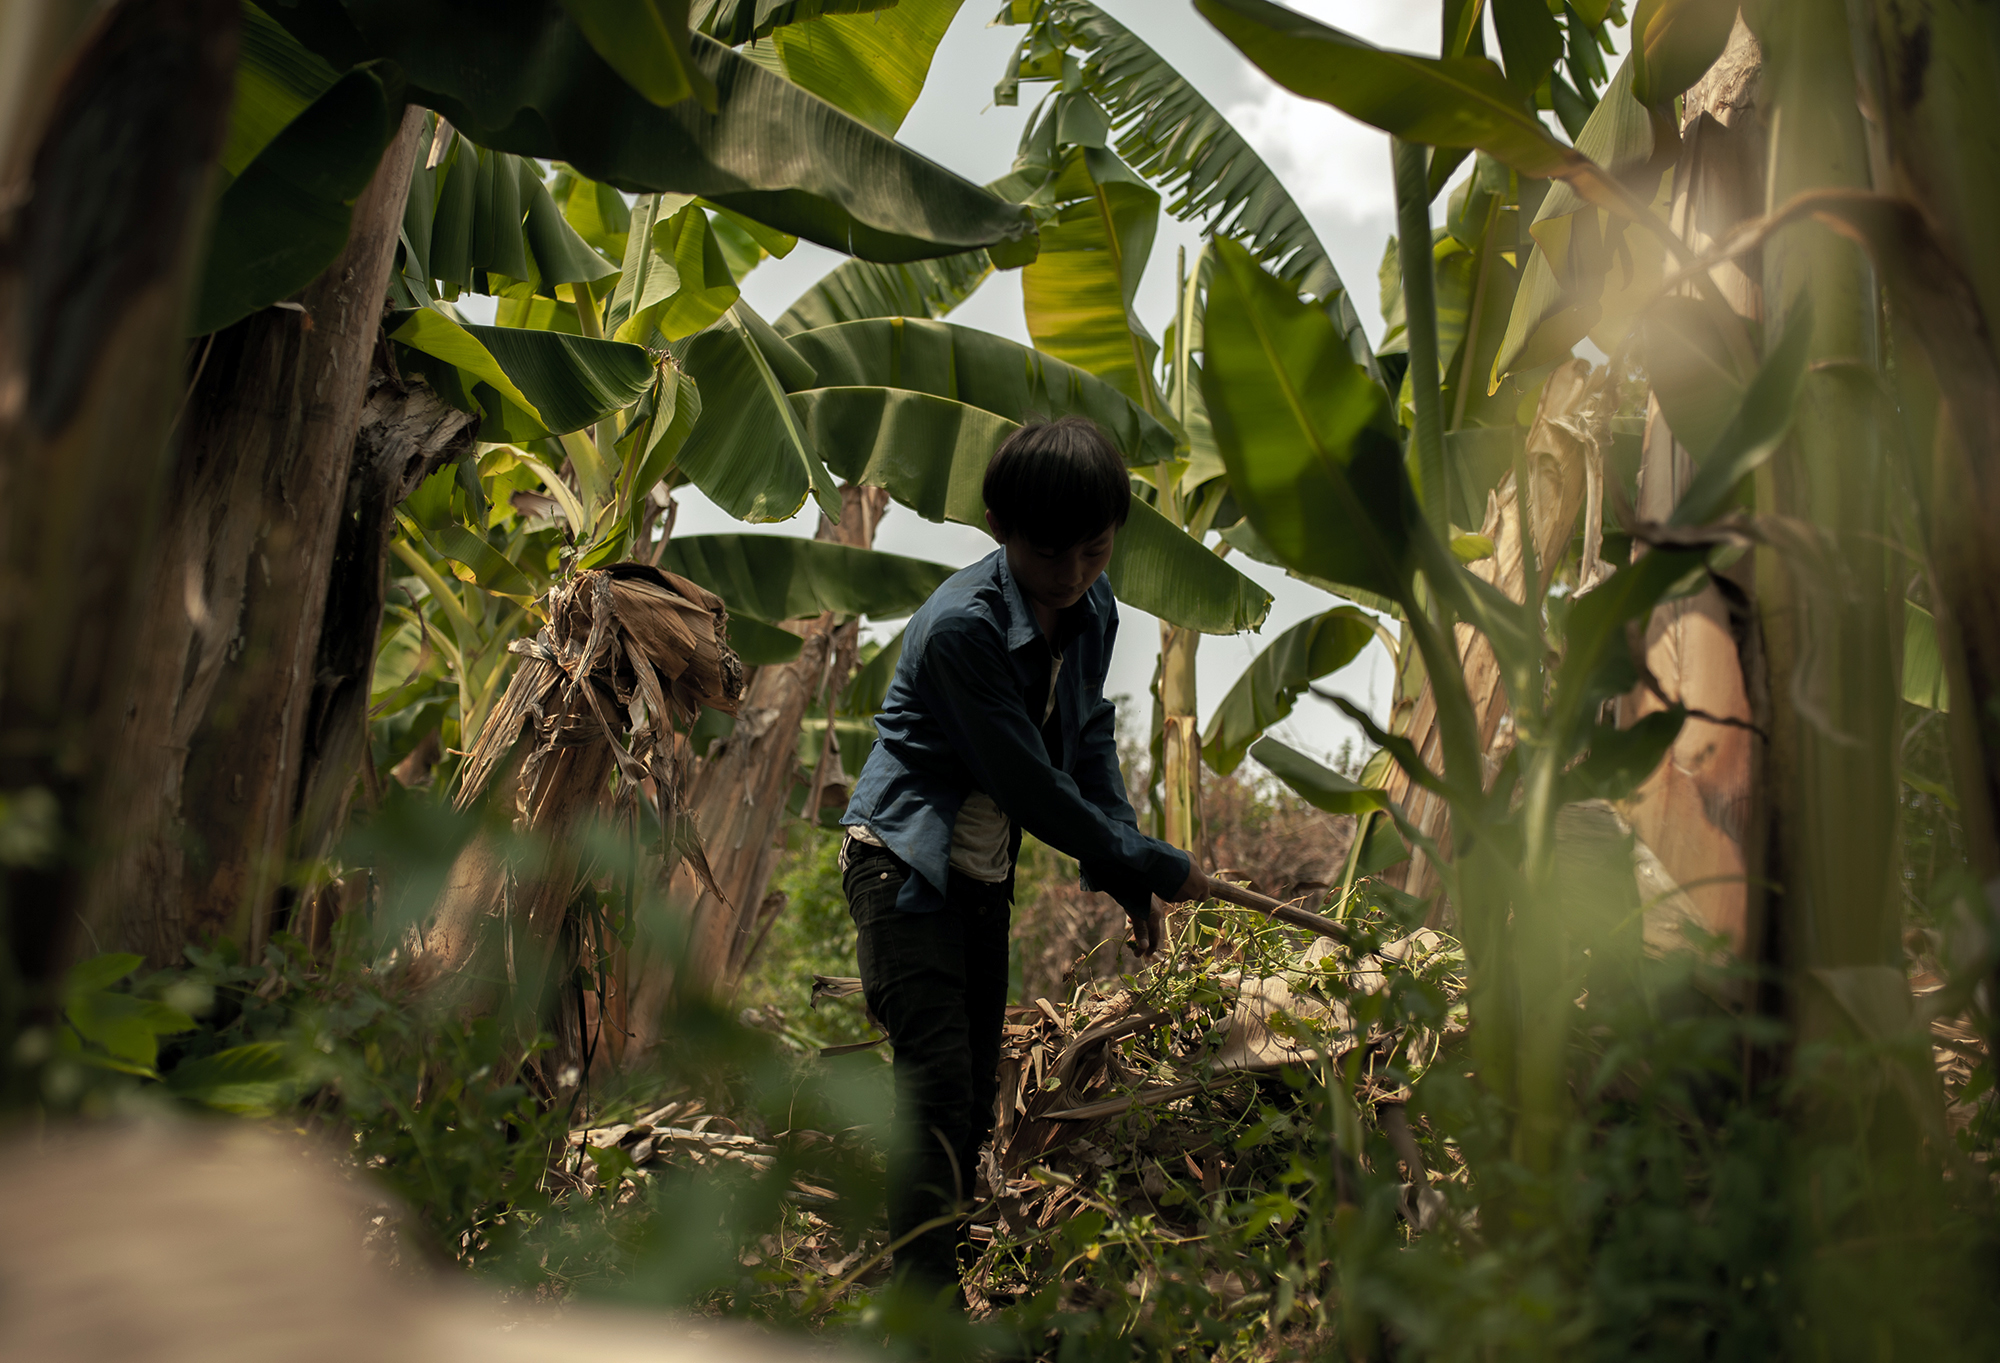 16-year-old Ton removes weed in the plantation. Having worked in banana plantations for more than 4 years, he wants try the factories in Thailand but cannot afford the visa. (Image: Visarut Sankham/China Dialogue)